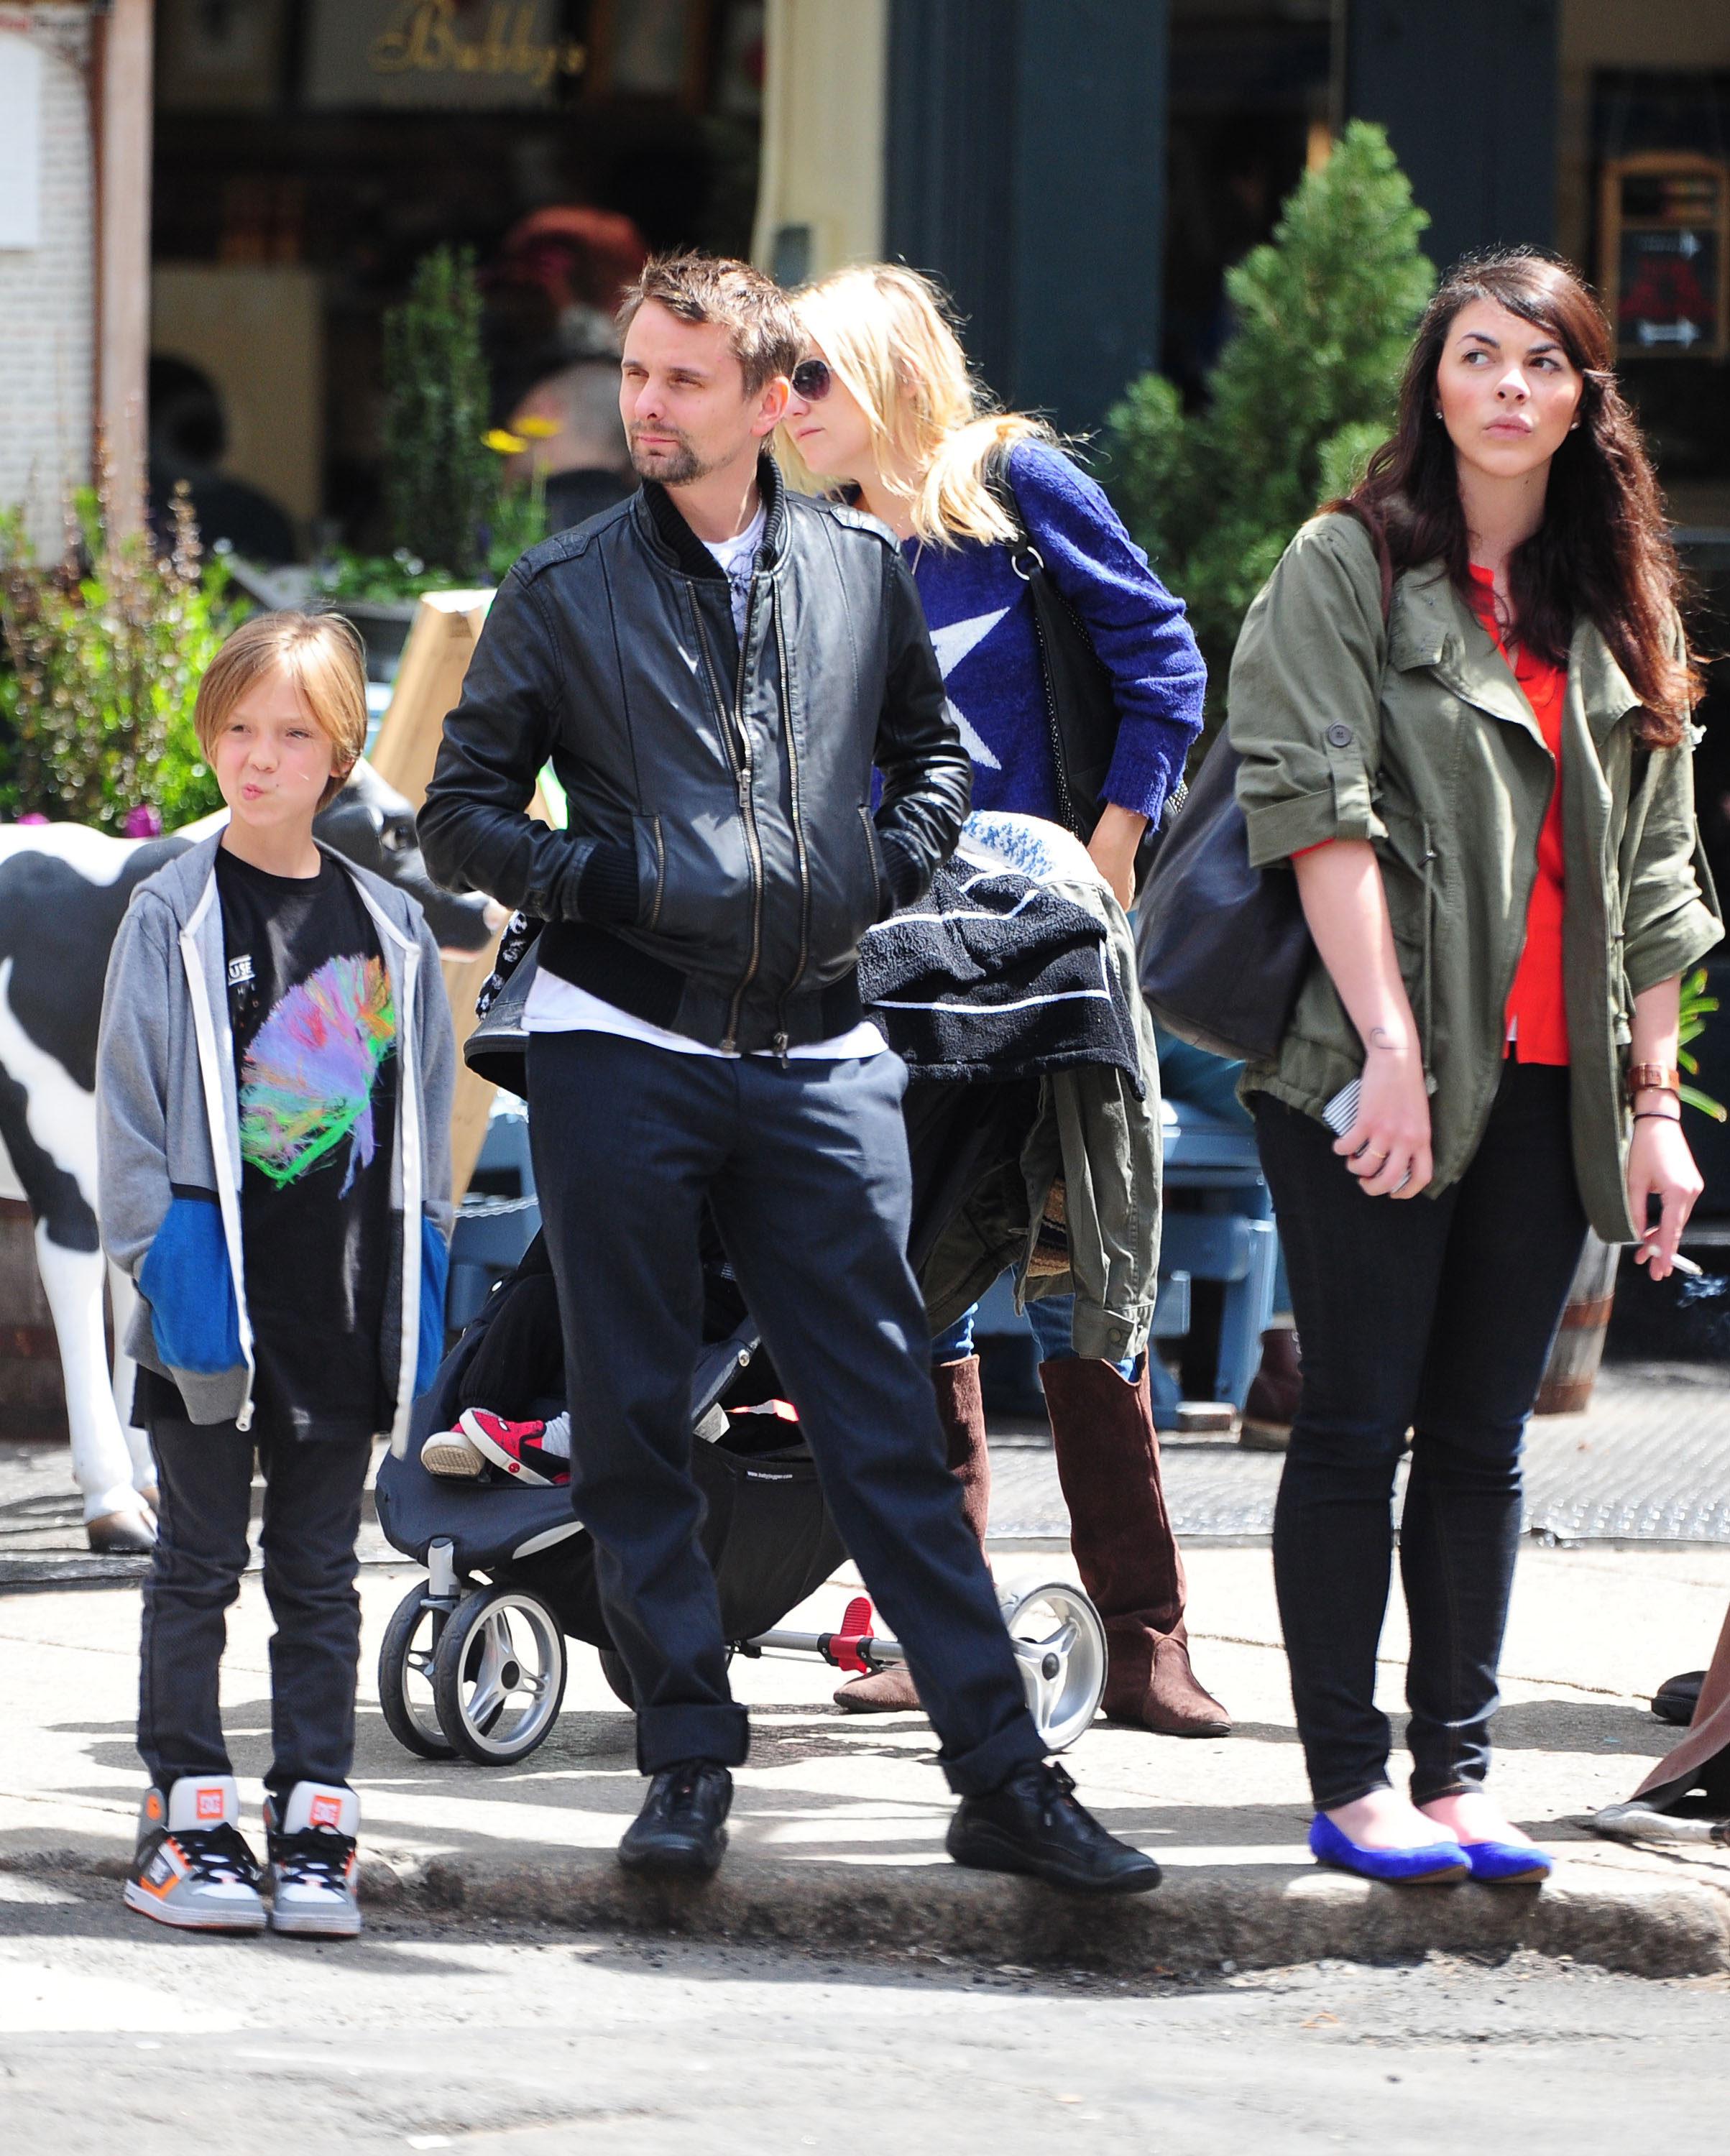 Kate Hudson Hangs With Her Boys on a Sunny Big Apple Outing